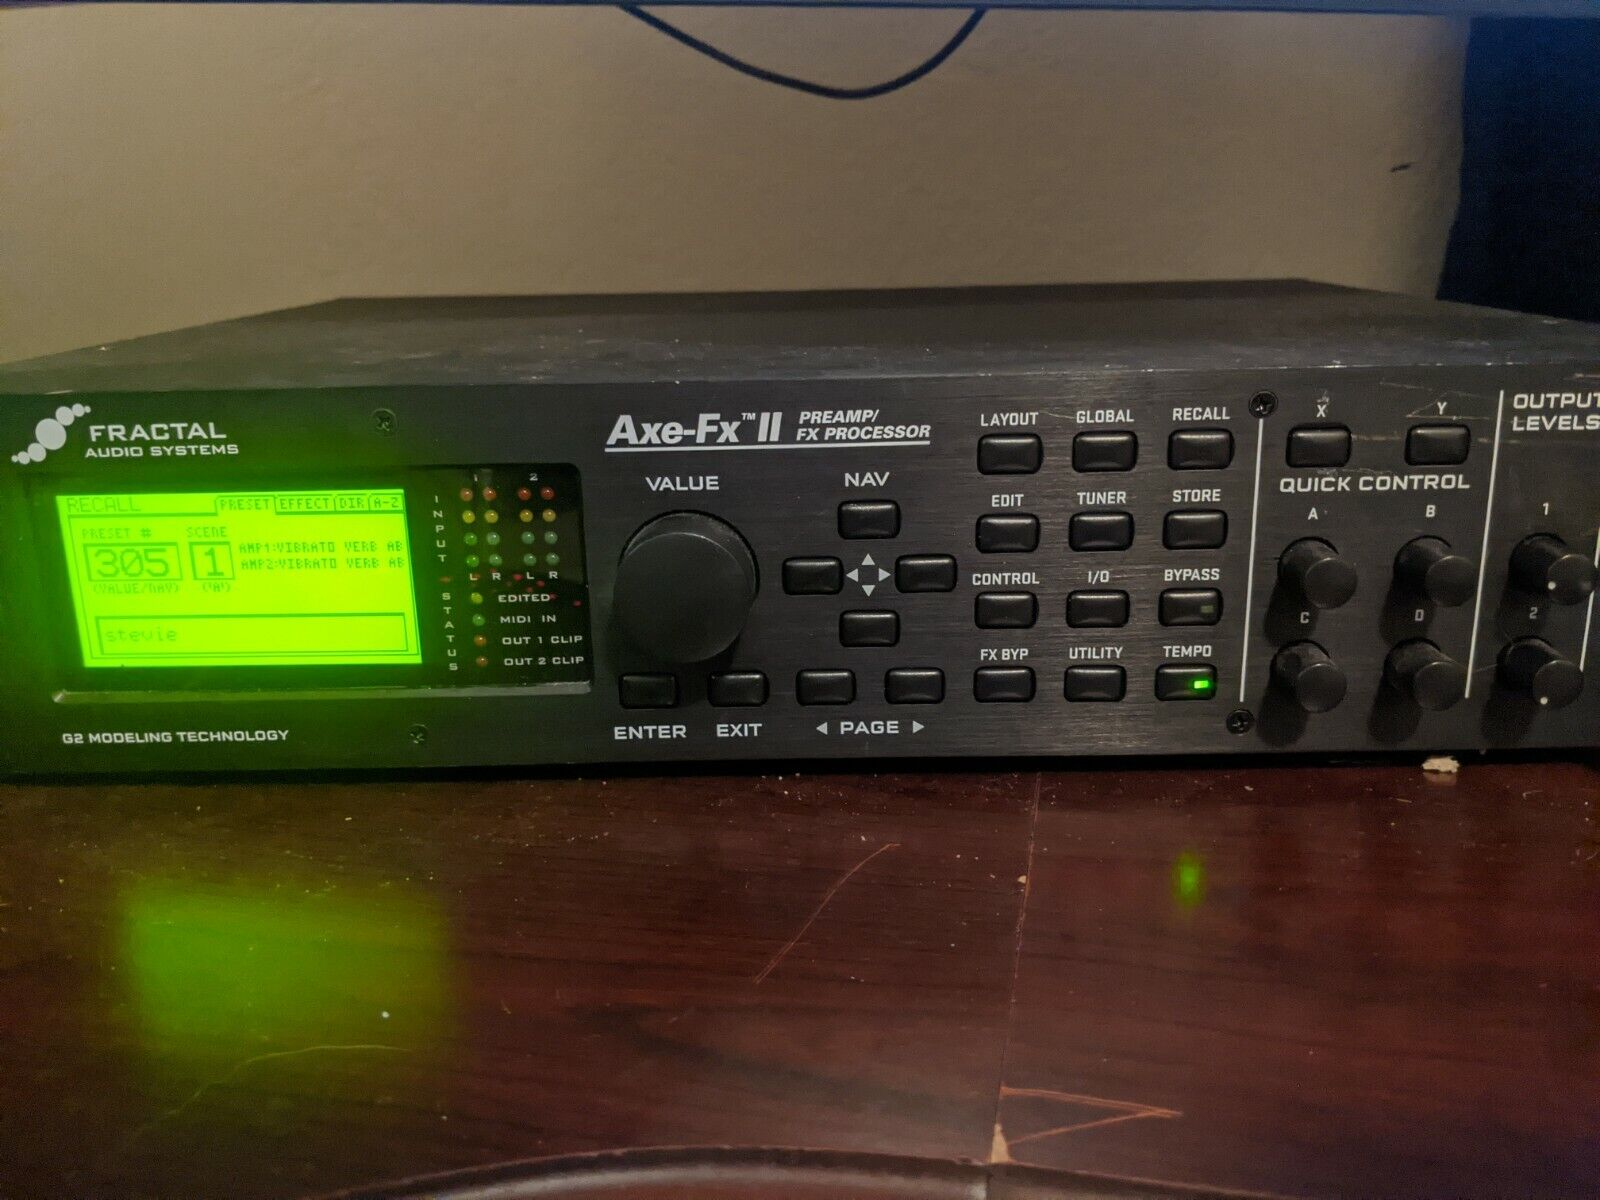 Fractal Audio AXE-FX II Mark I  - $600.00